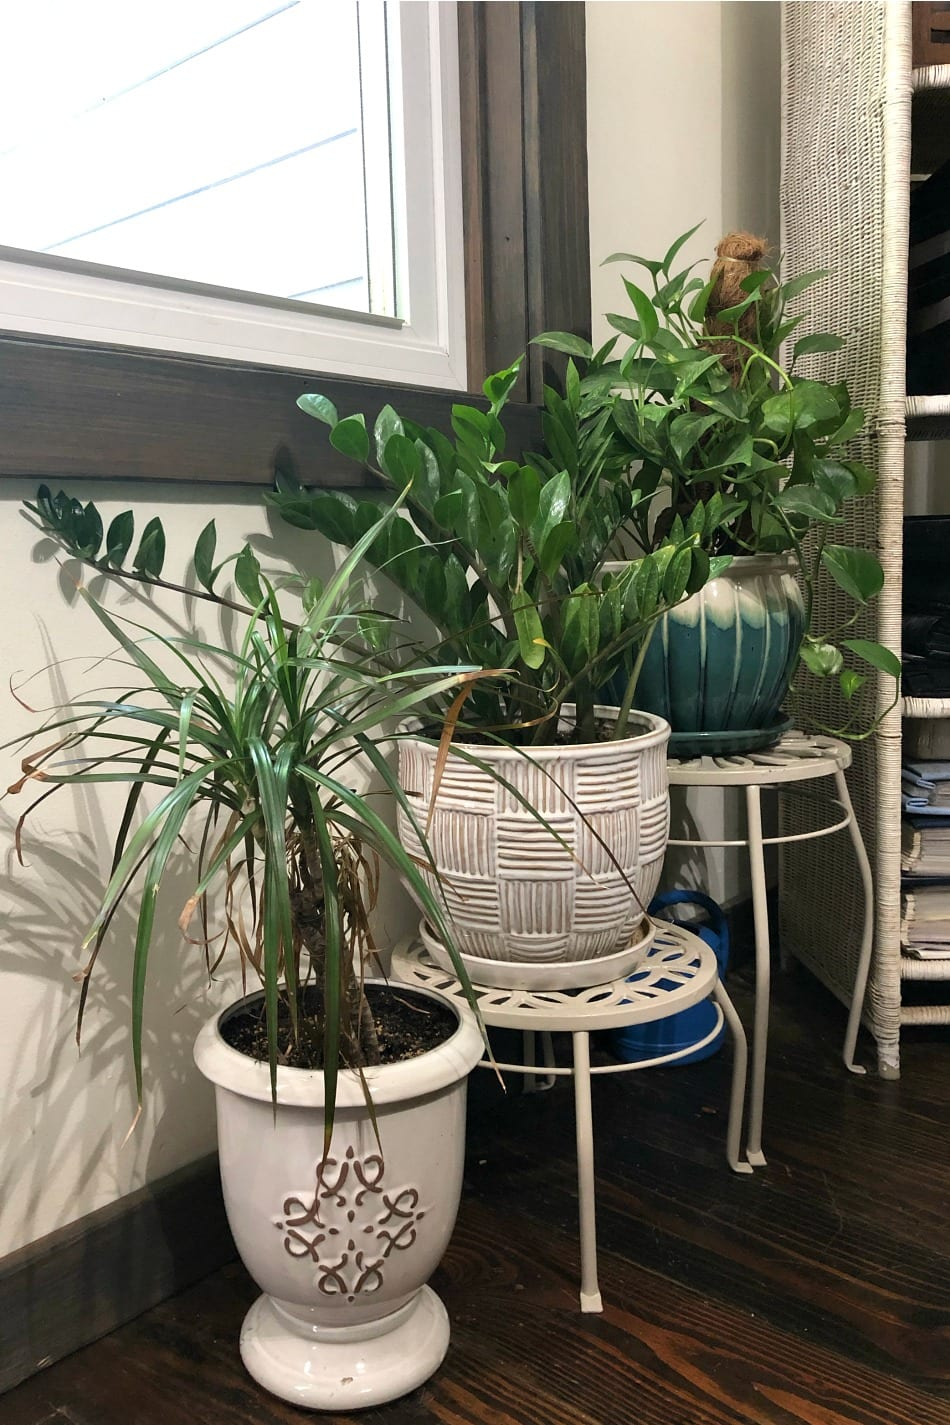 14 Air-Purifying Houseplants For Clean Air & A Beautiful Home | Growing Up Herbal | Here are 14 air-purifying houseplants that are great for indoors, easy to grow and care for (even for beginners), and make lovely additions to your home!